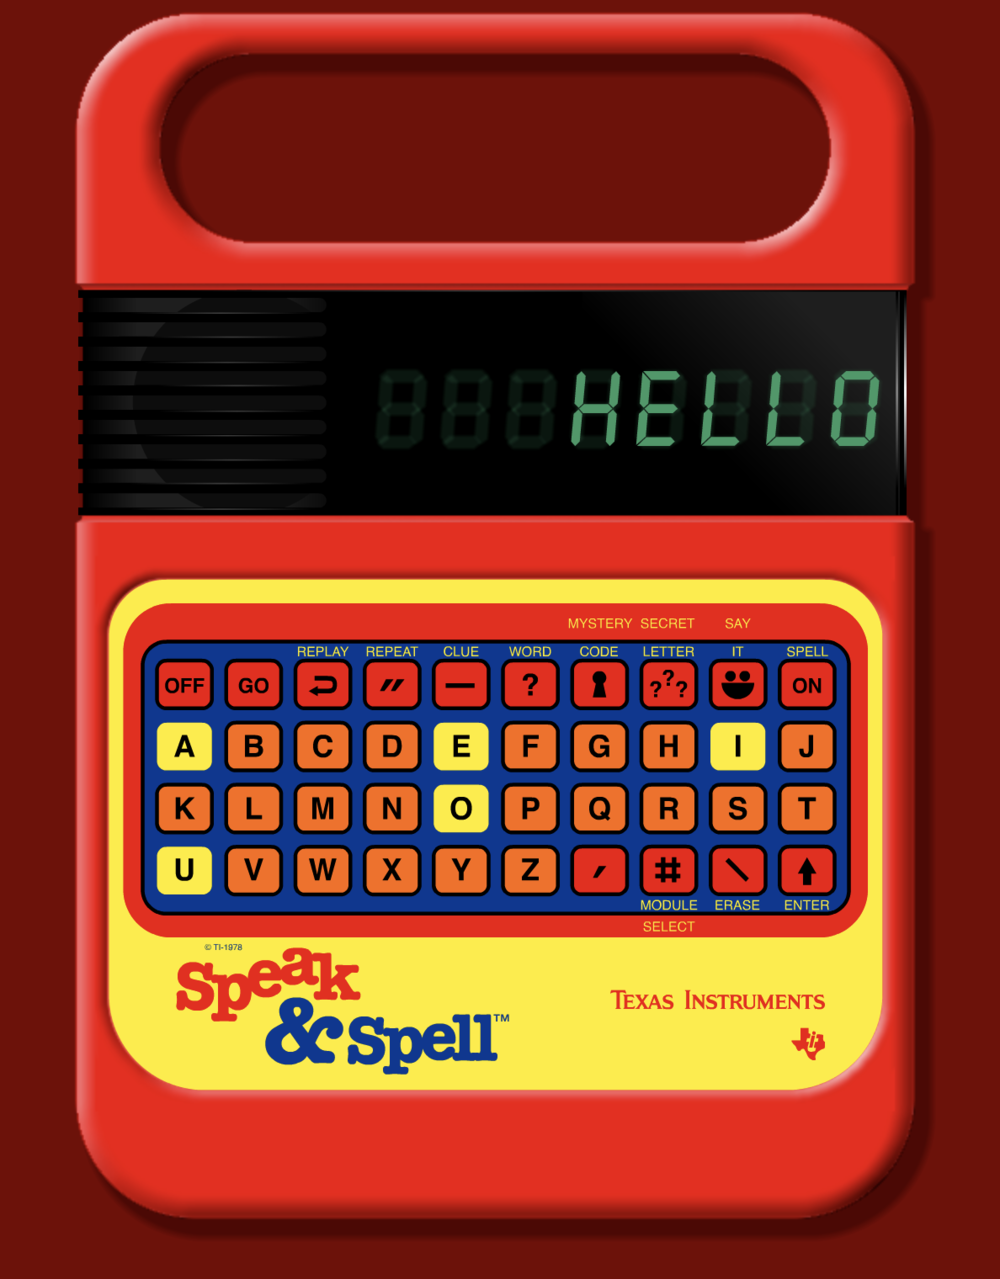 Speak and Spell Retro Computer Toy Emulator.png